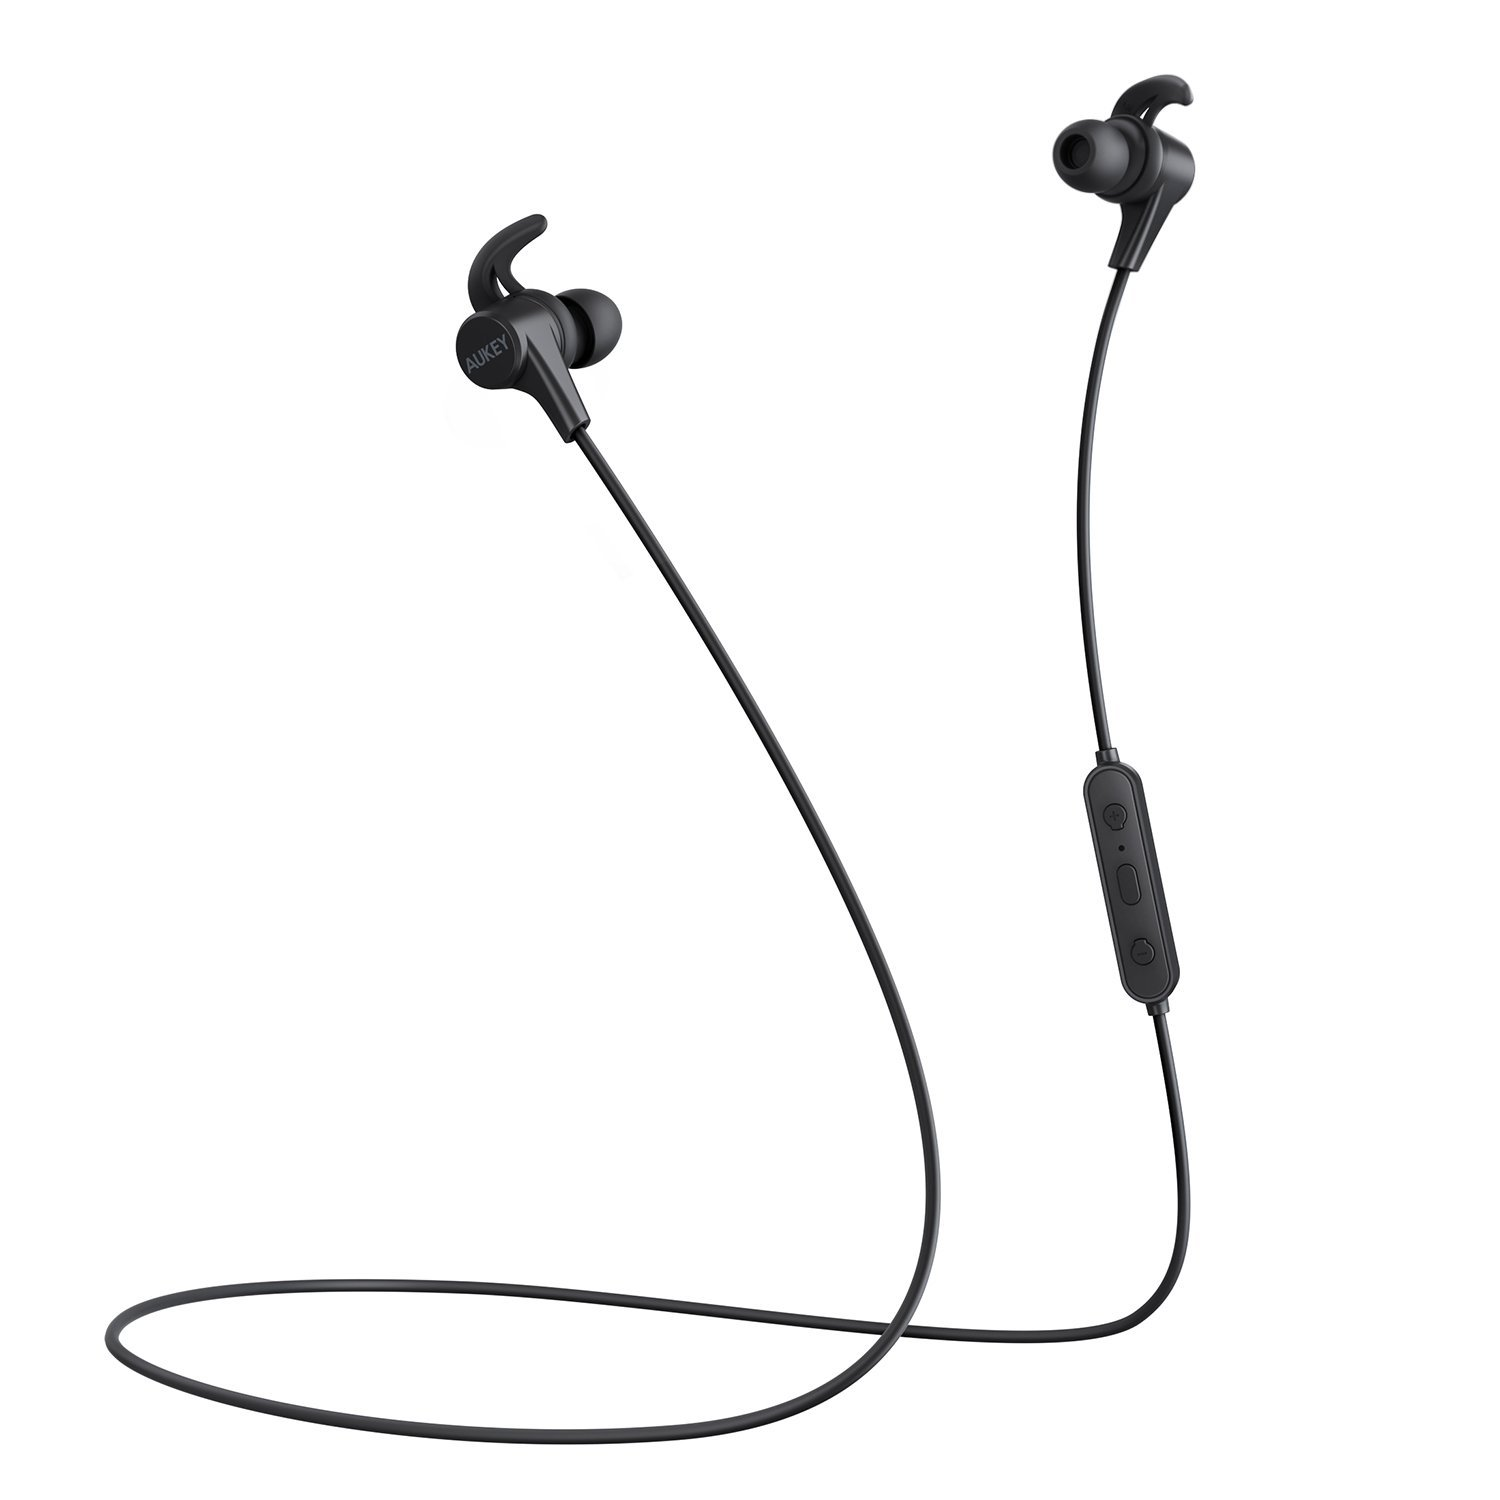 Aukey Latitude Headphones EXTREME LOW PRICE!!!